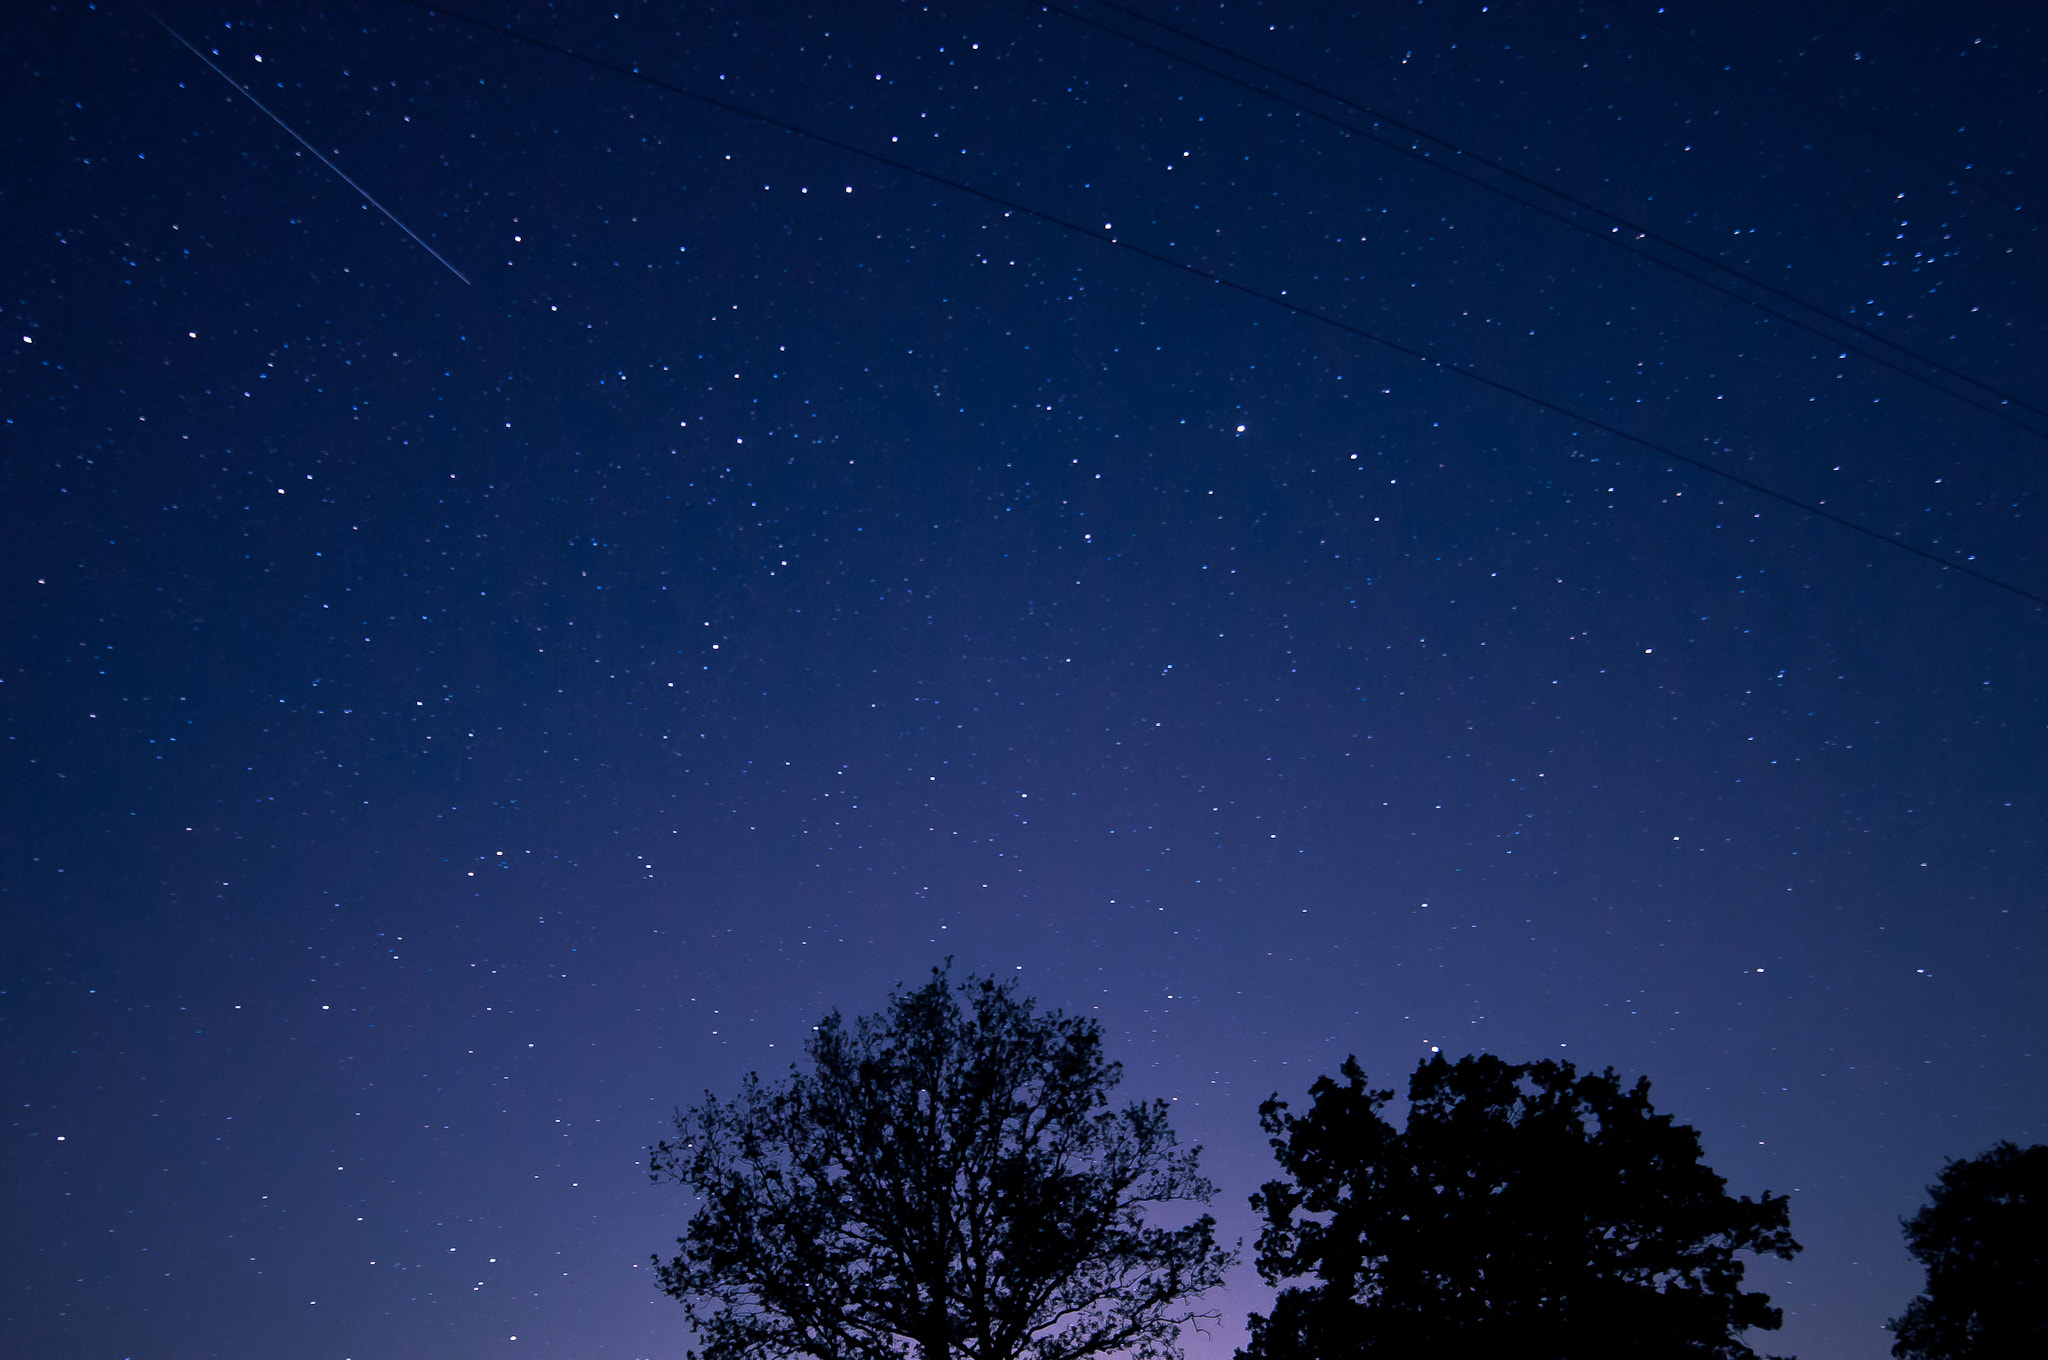 Photograph Nightsky on Northeurope by Thorsten Veith on 500px